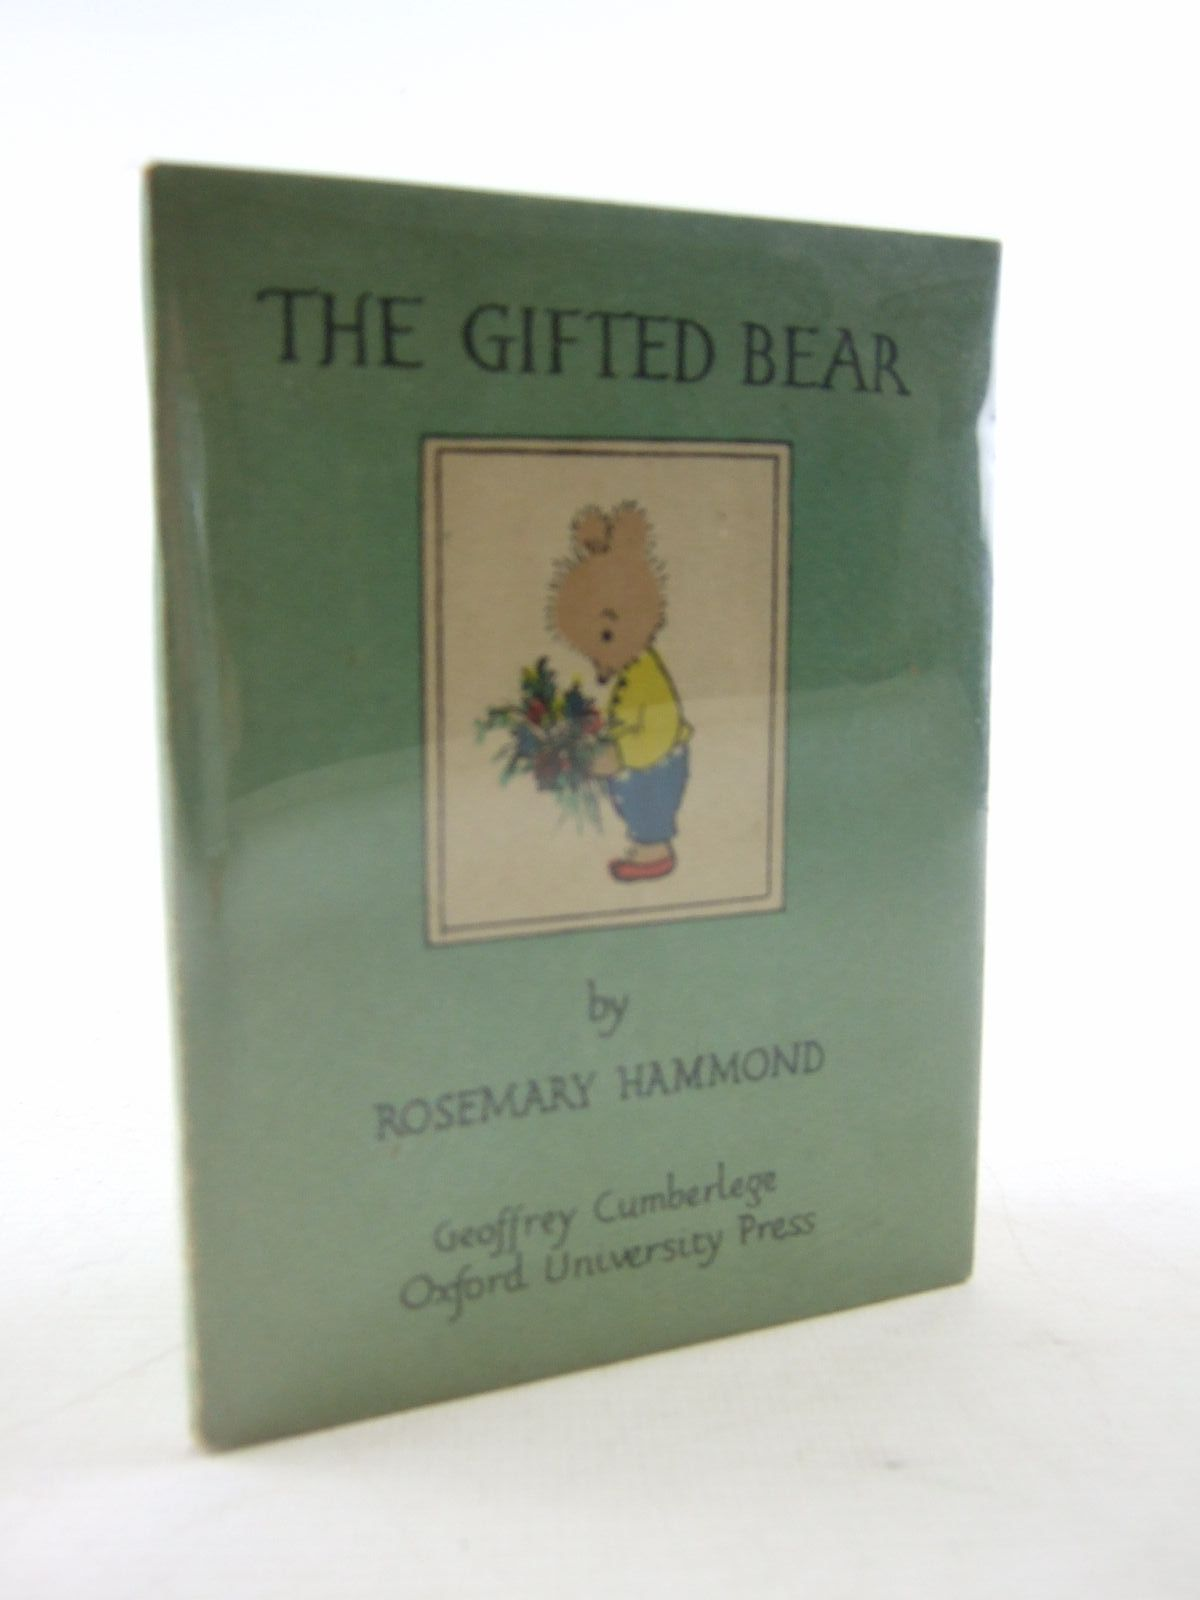 Photo of THE GIFTED BEAR written by Hammond, Rosemary illustrated by Hammond, Rosemary published by Geoffrey Cumberlege, Oxford University Press (STOCK CODE: 1706677)  for sale by Stella & Rose's Books